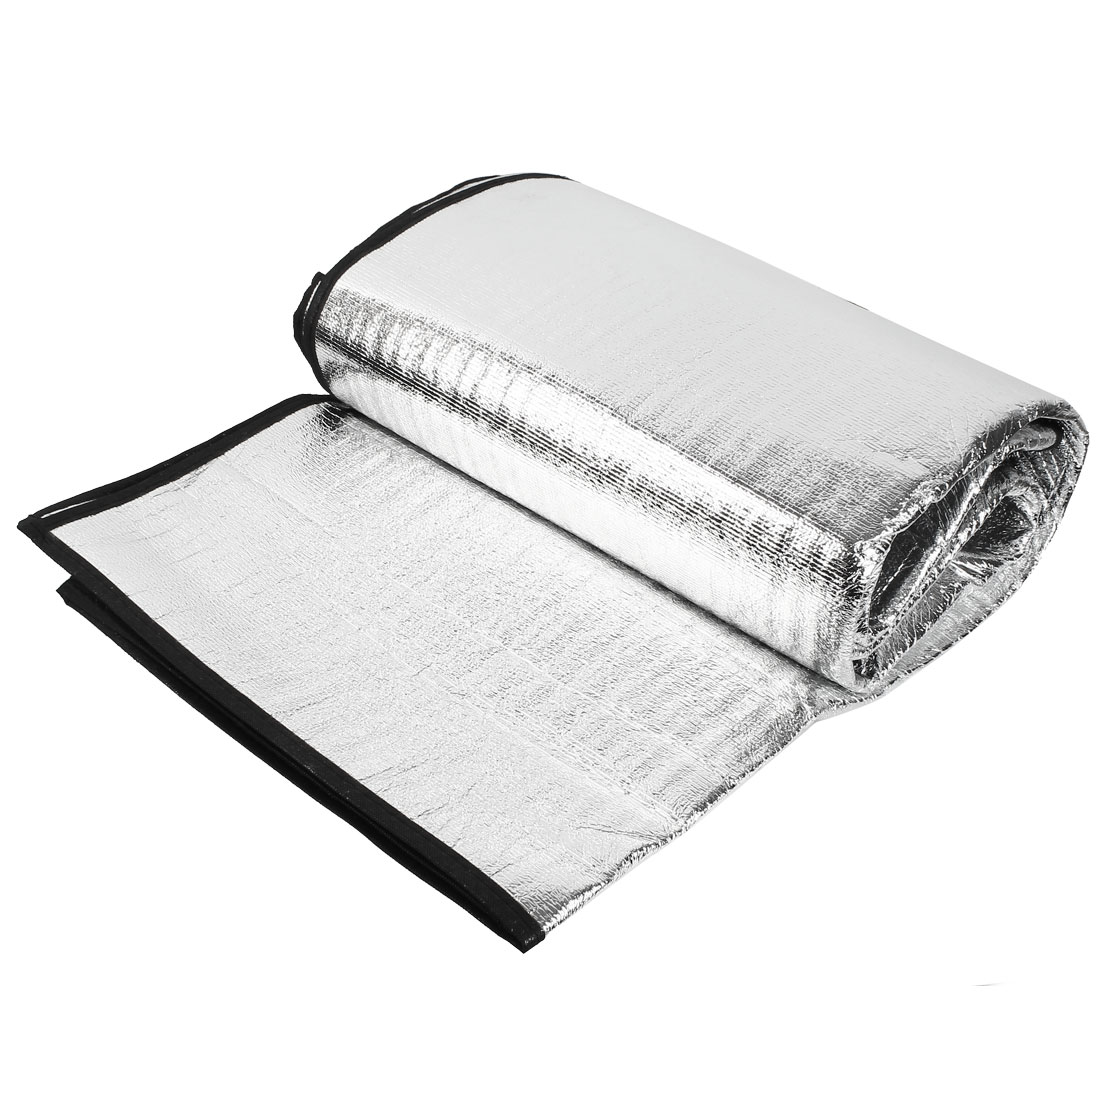 Portable Outdoor Camping Dual Side Aluminum Foil Waterproof Sleeping Pad Mat Mattress